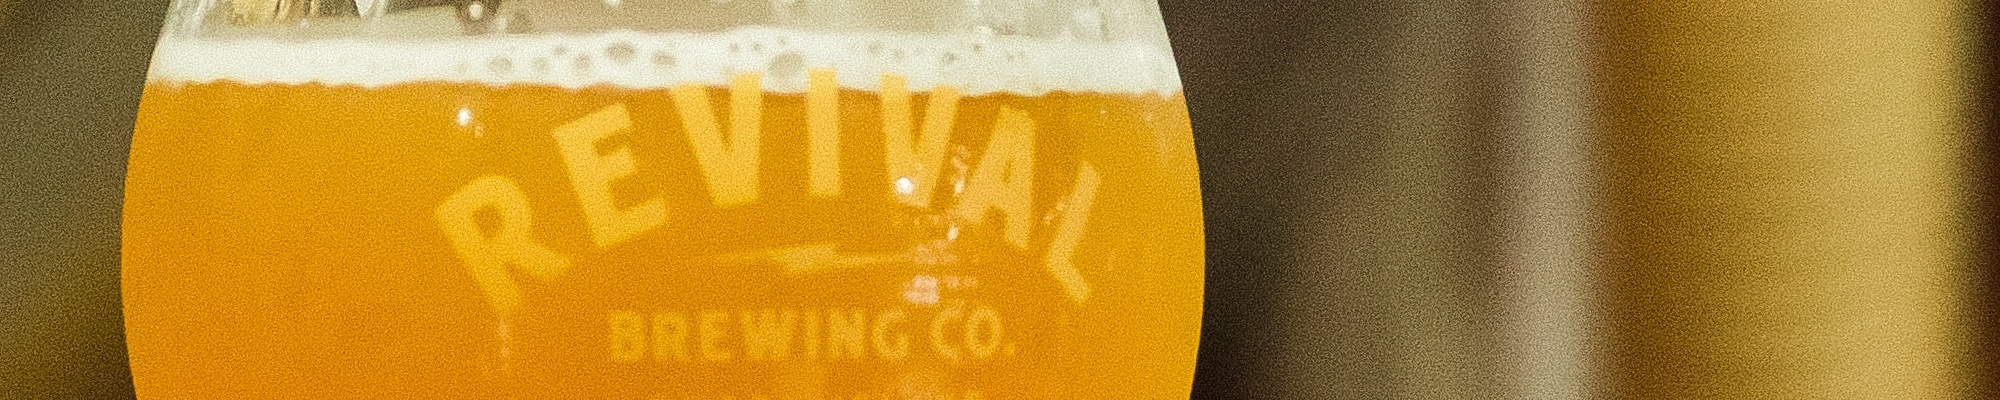 revivalbrewing Cover